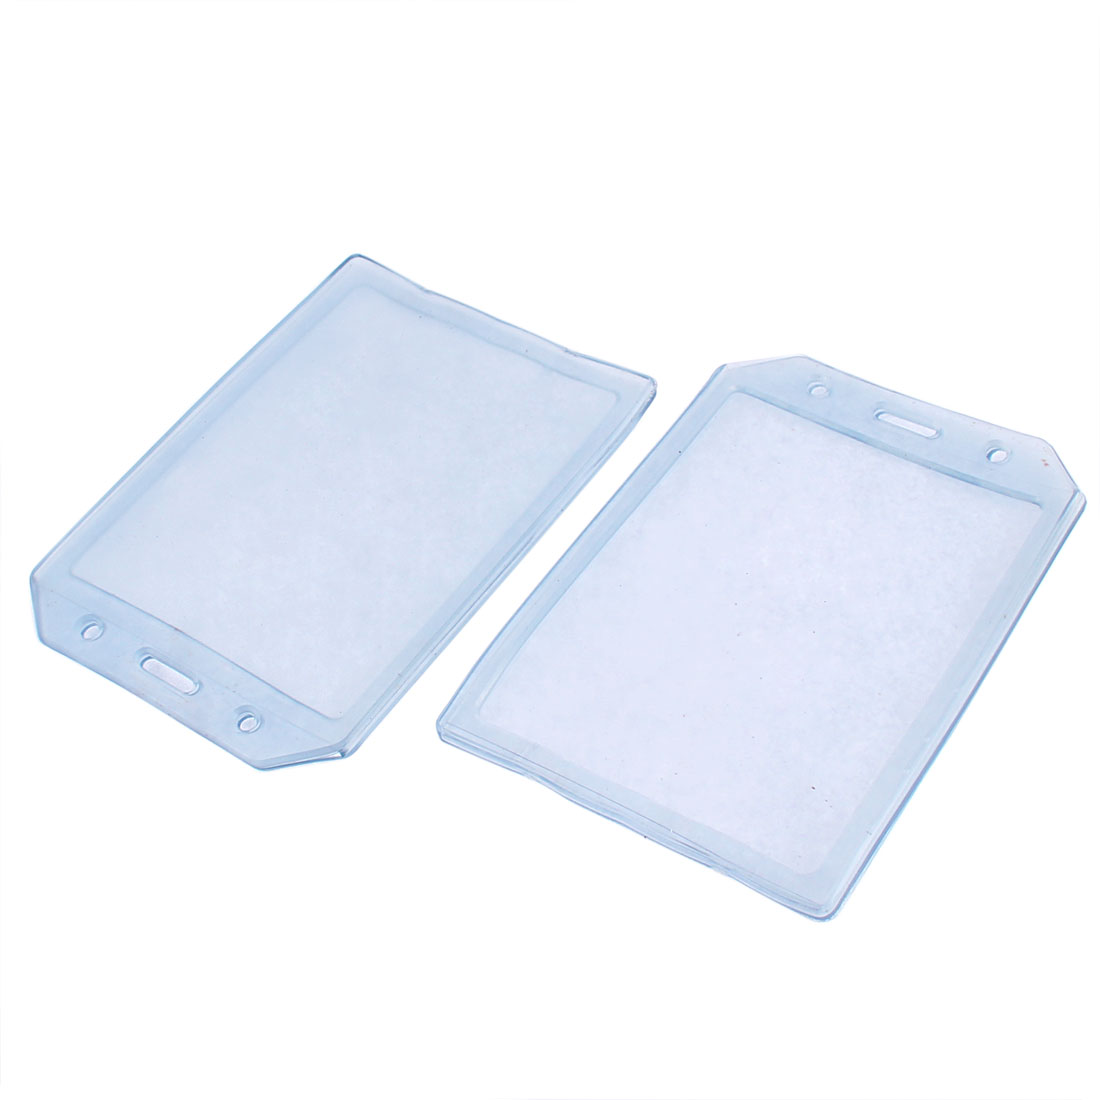 Clear Vertical Plastic B7 Badge ID Card Holder Case Protector 2pcs